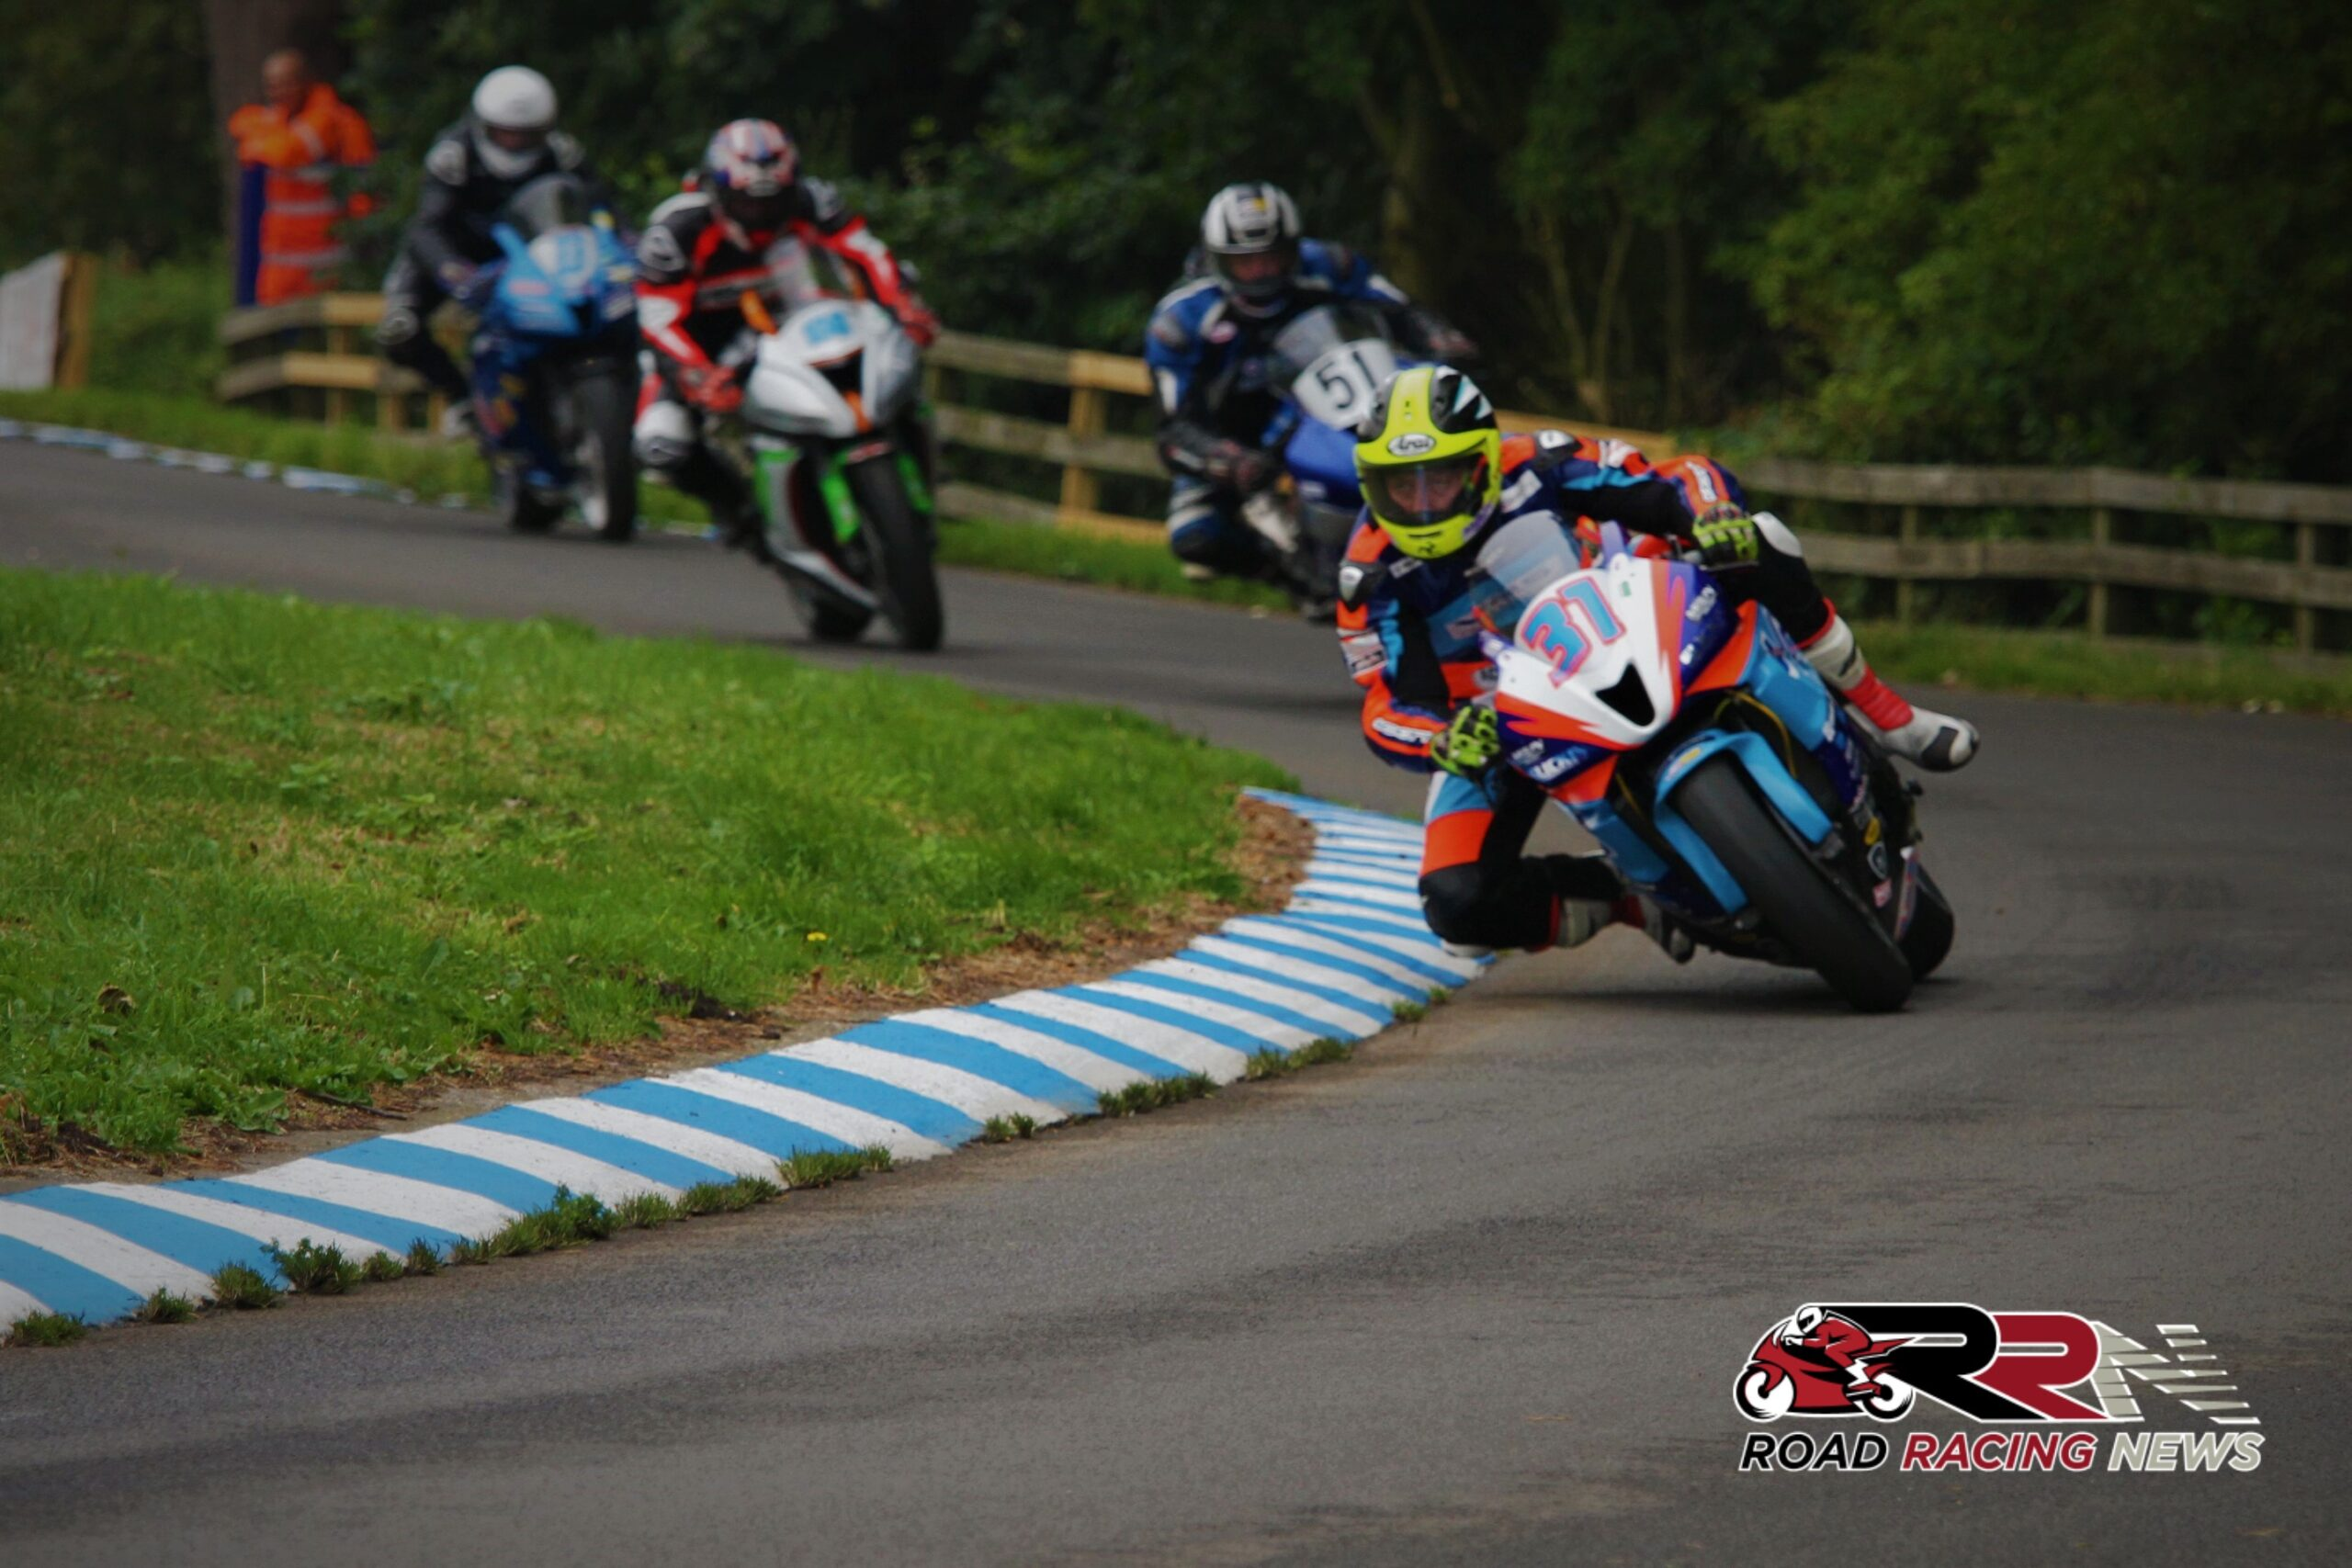 Opinion: It's Back And In Style, The Unique Circuit That Is Oliver's Mount